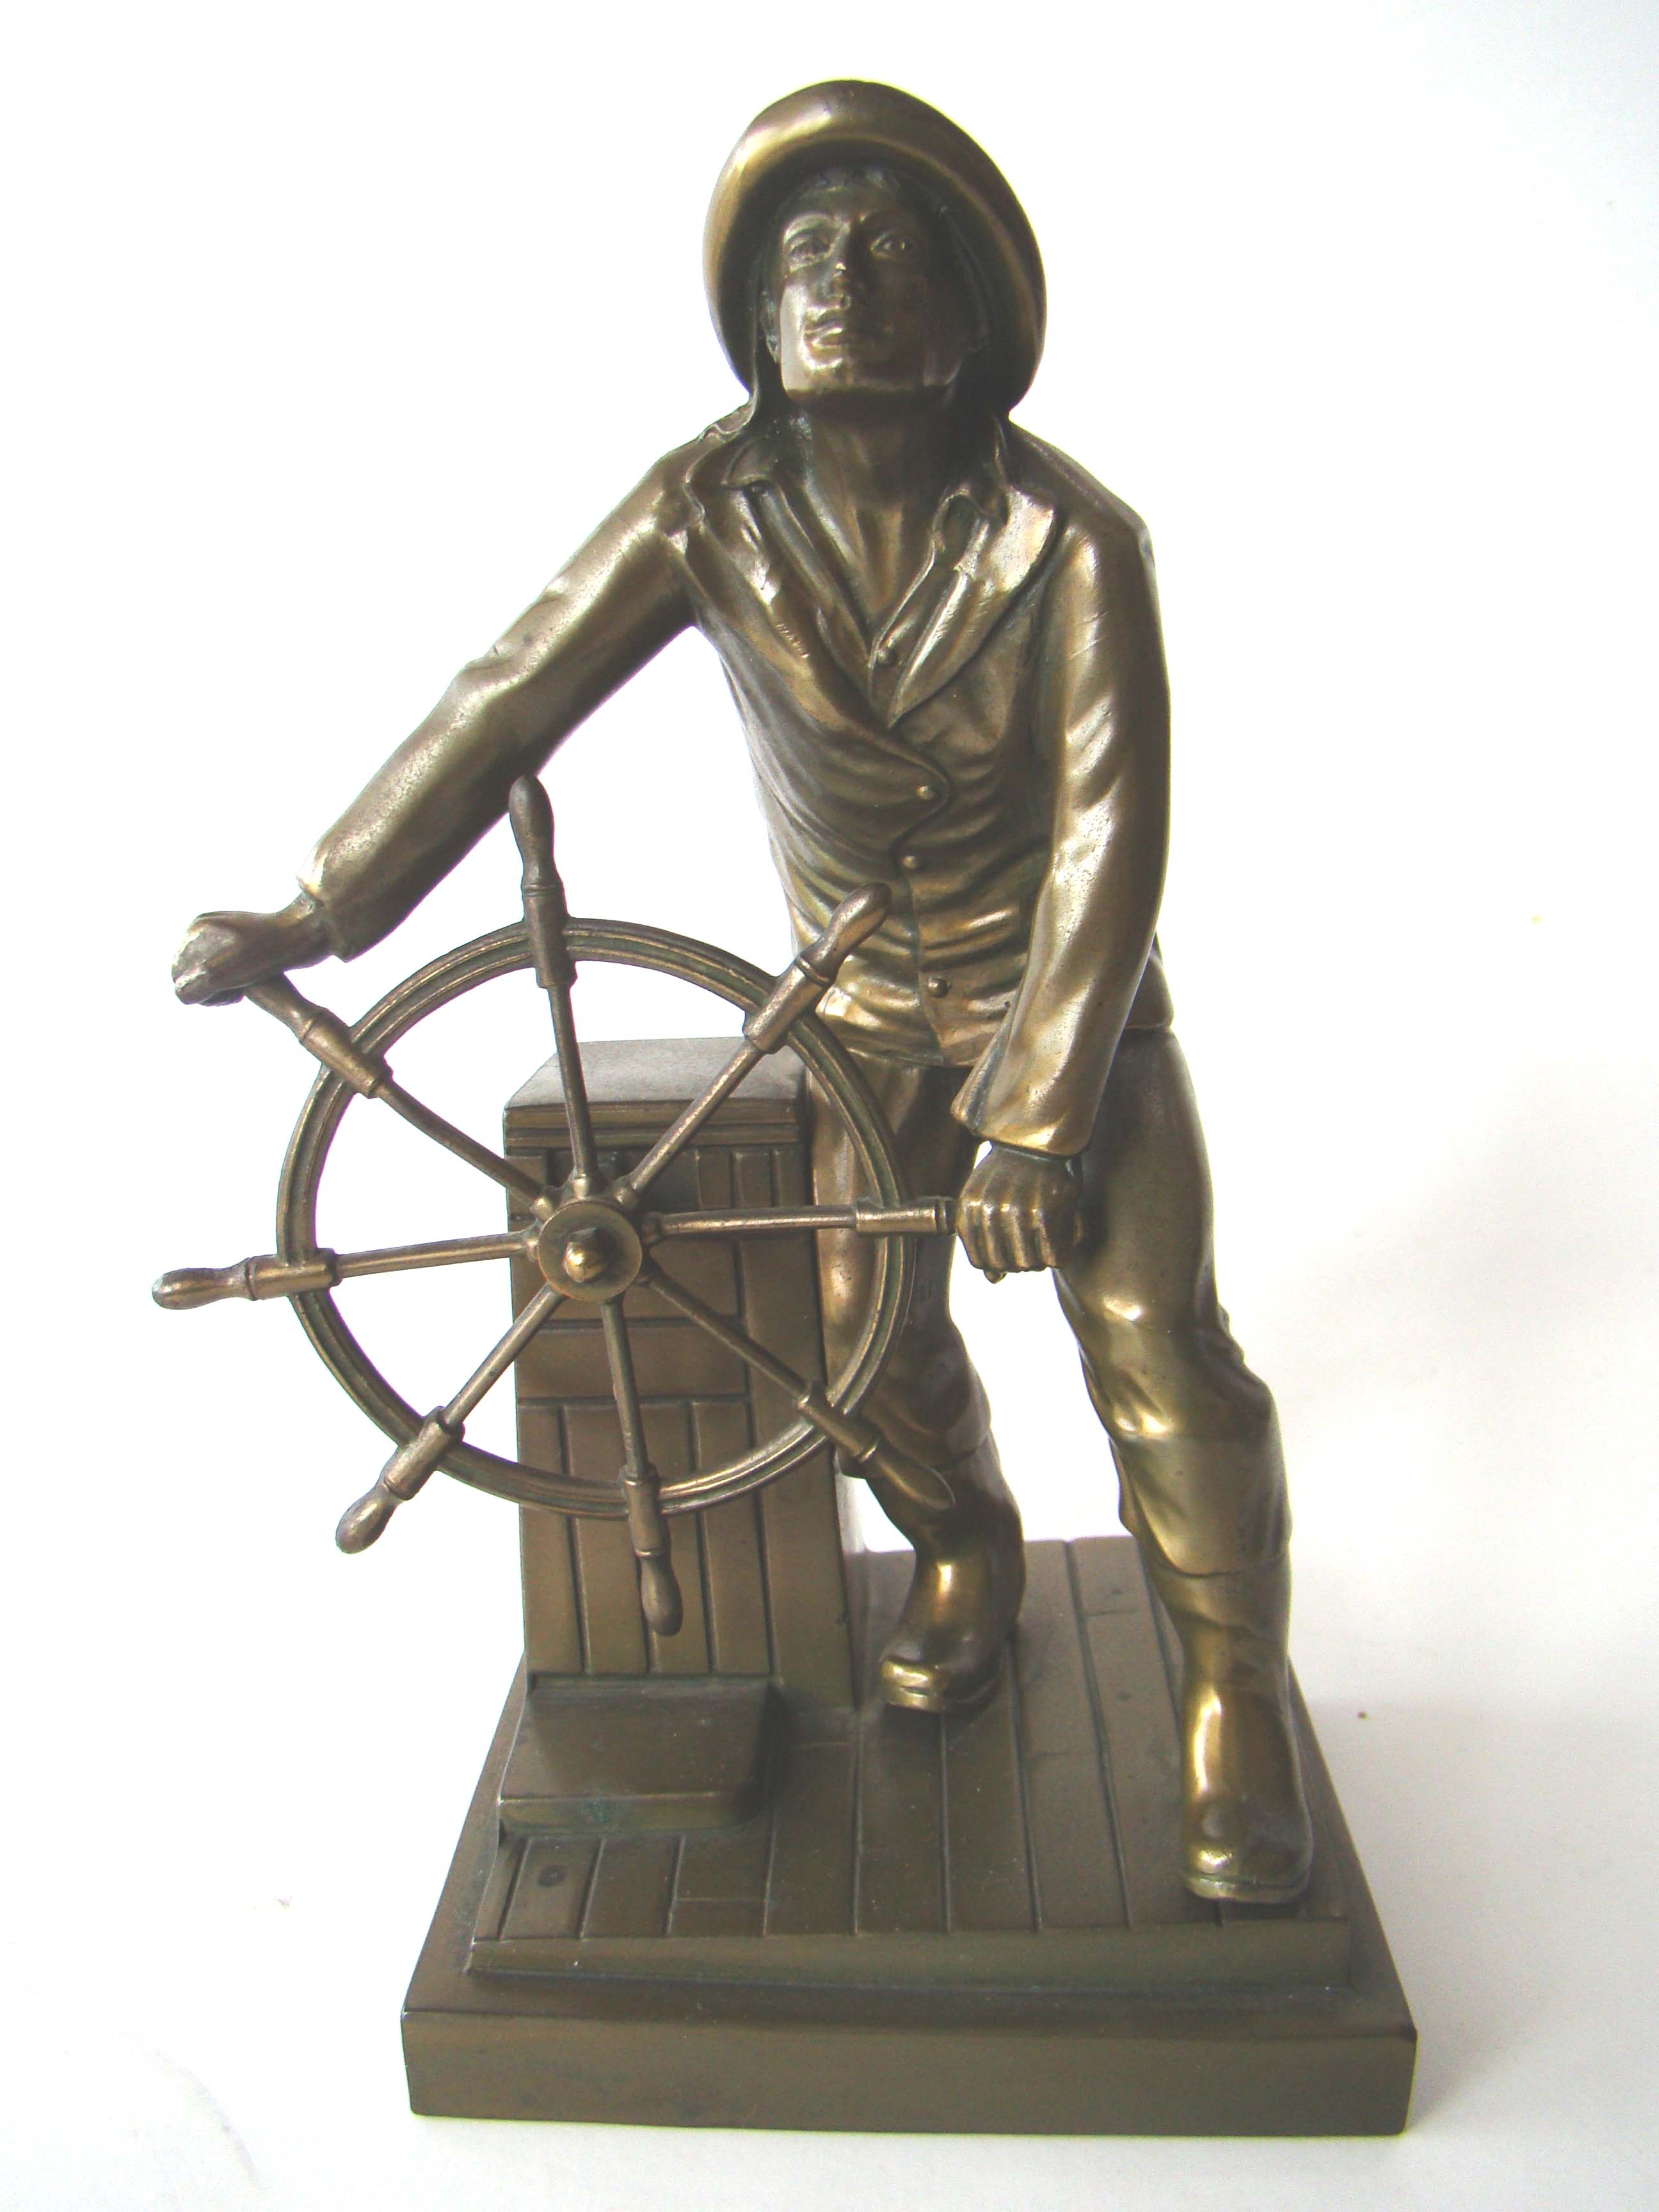 click to view detailed description of A fine single bookend depicting the statue of the Gloucester Fisherman circa 1928